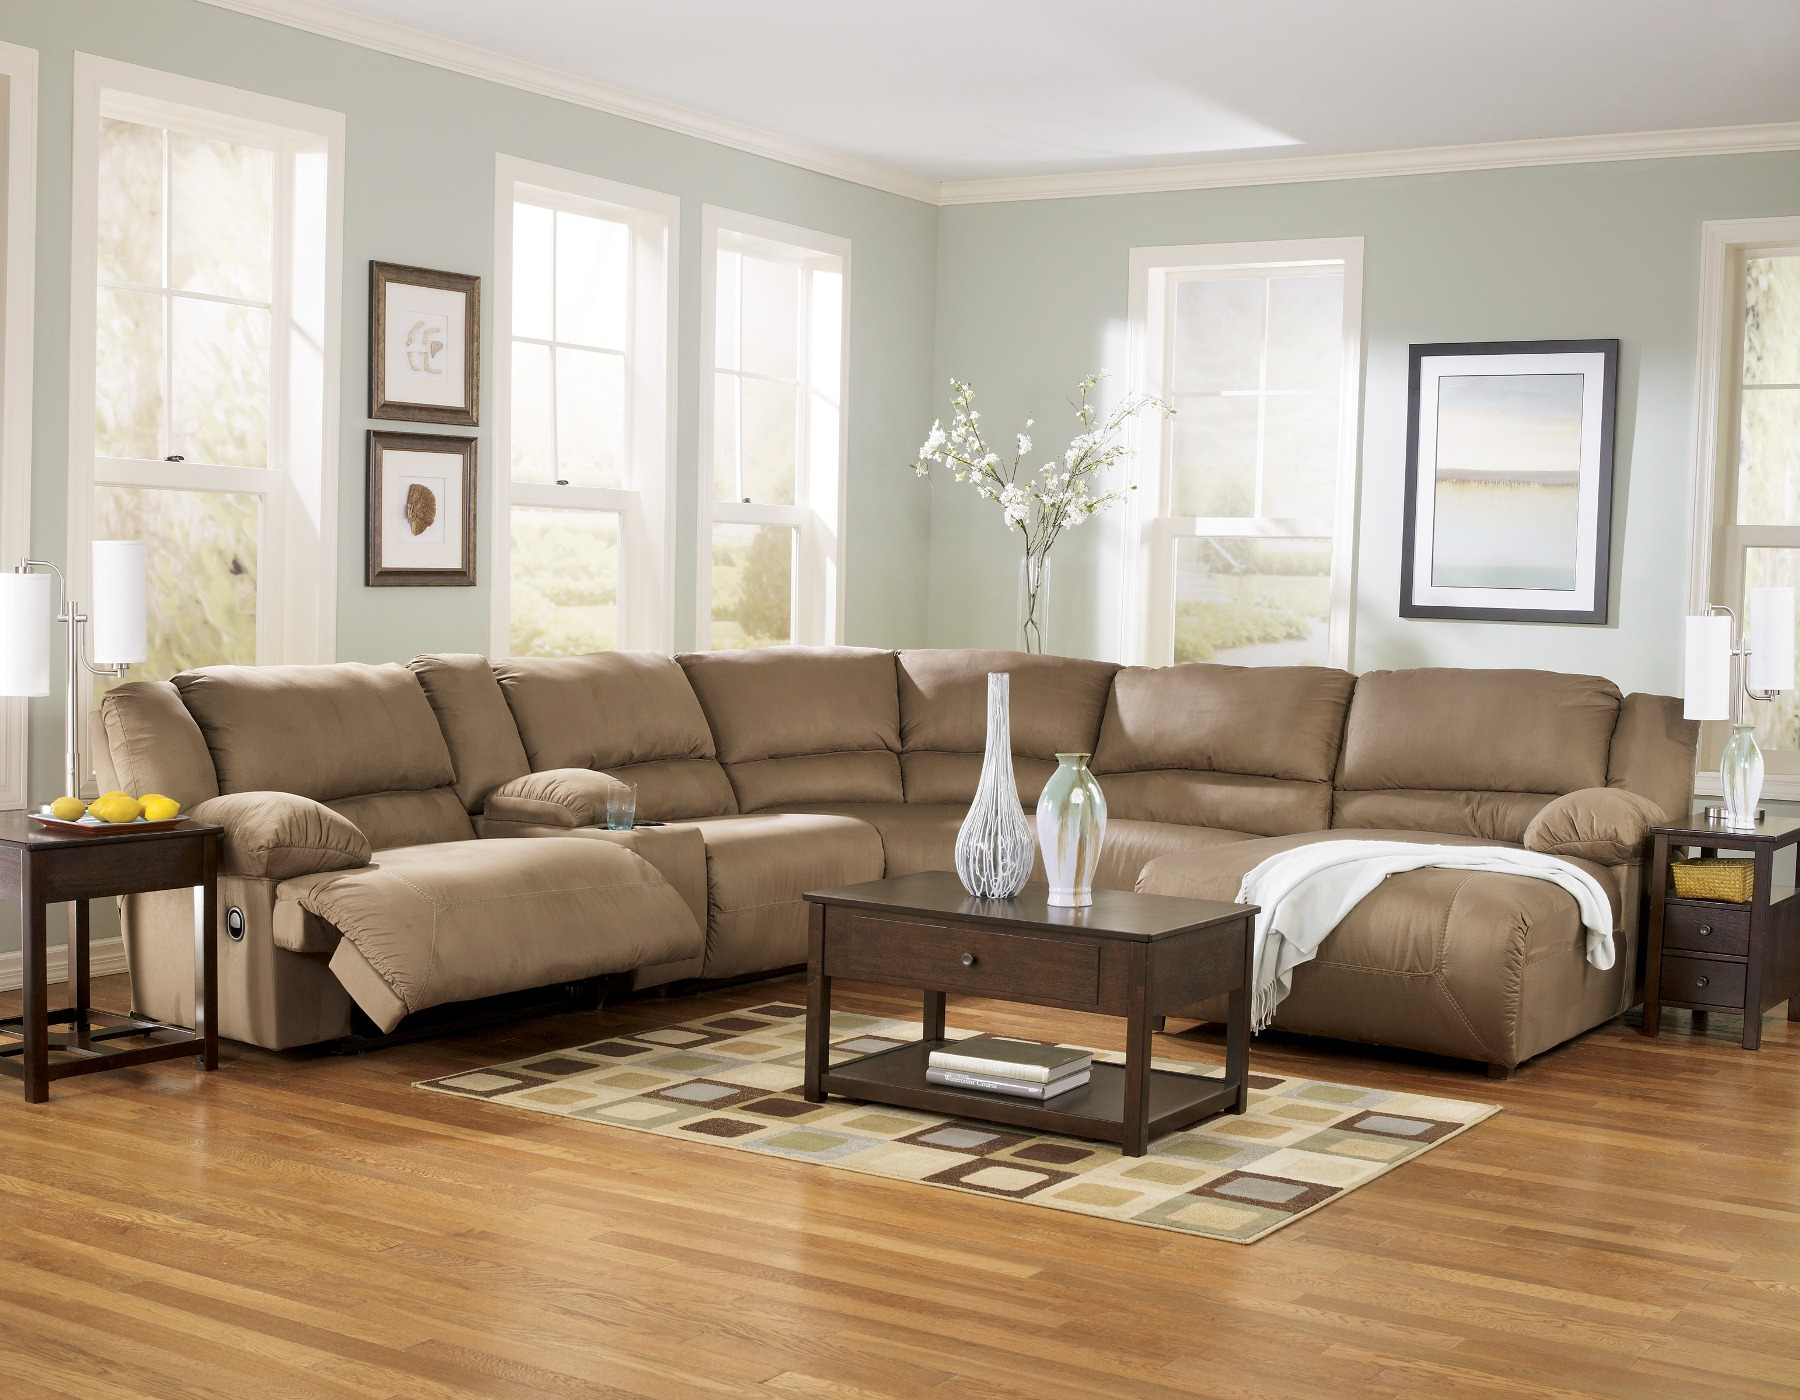 Living Room Sofa Ideas Modern Cheap Sectional Sofas In Tan On Wooden Floor Plus Checked Carpet And Small Table